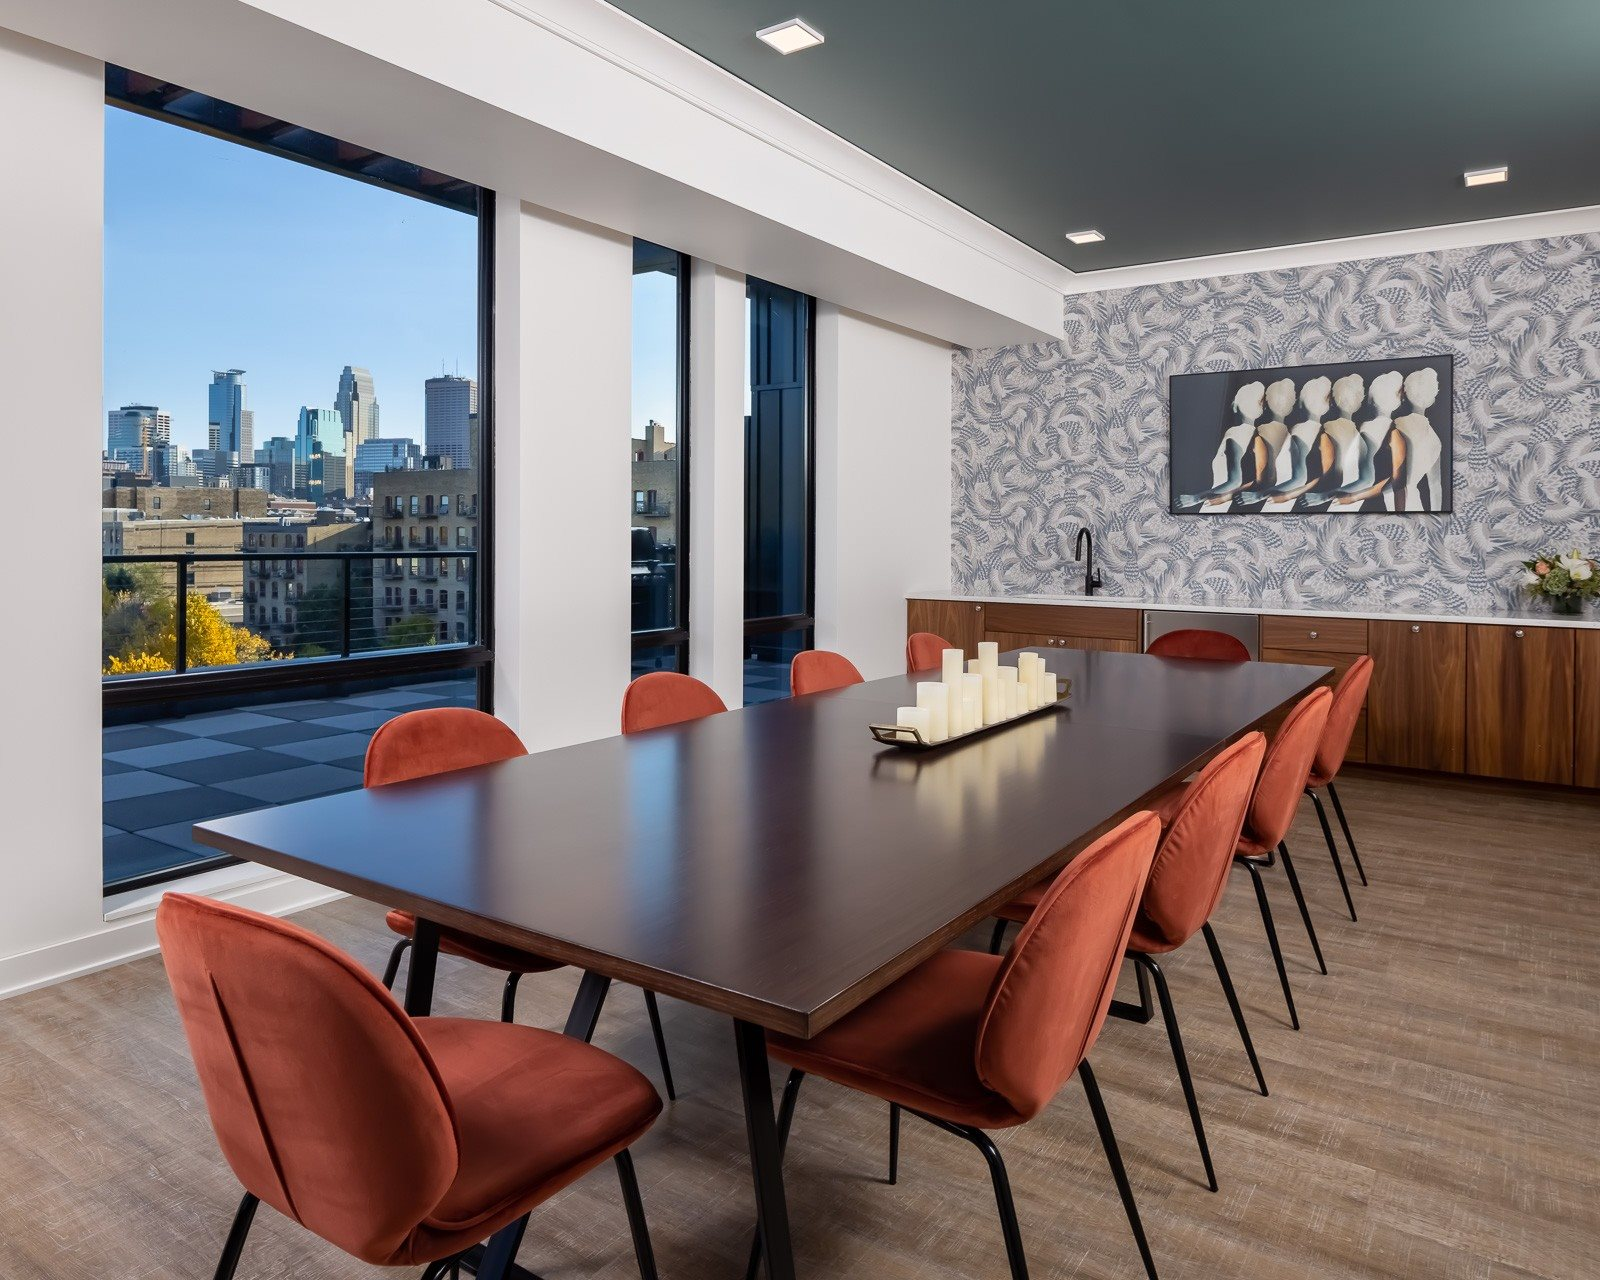 Private dining room overlooking downtown Minneapolis